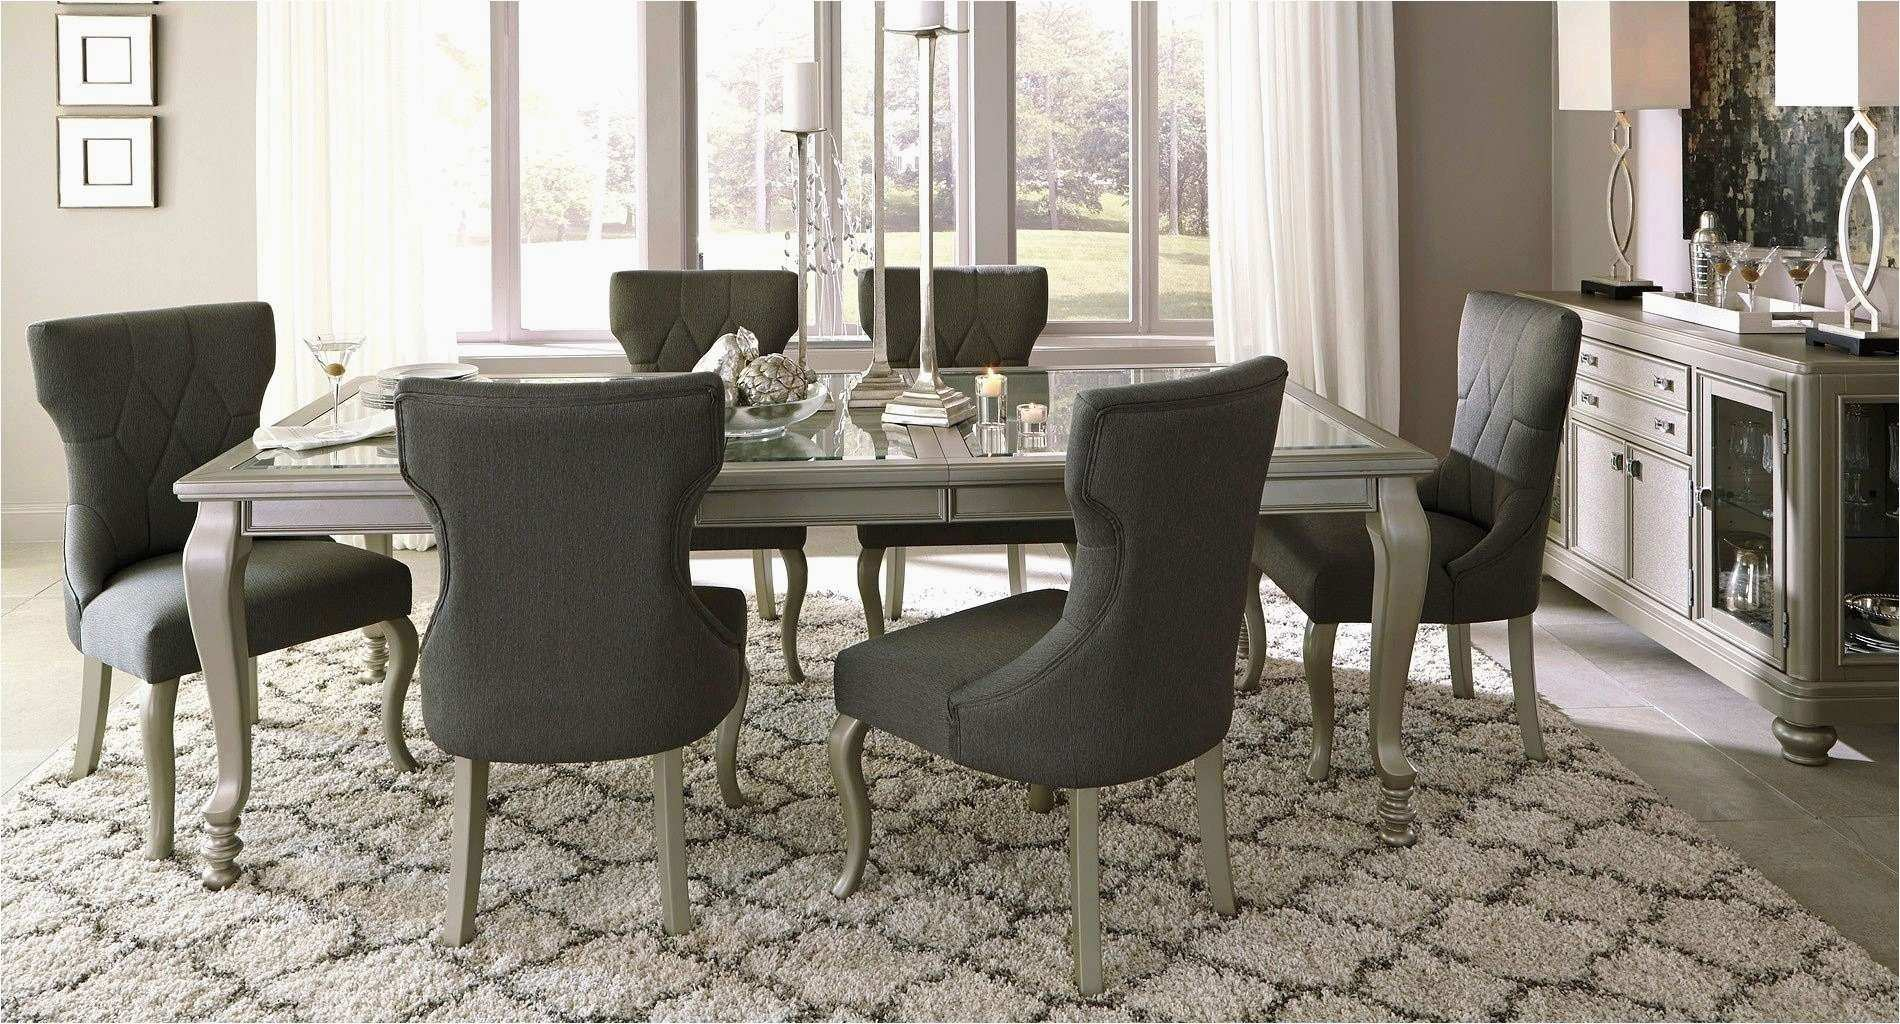 24 Best Dining Room Table and Chairs Stampler